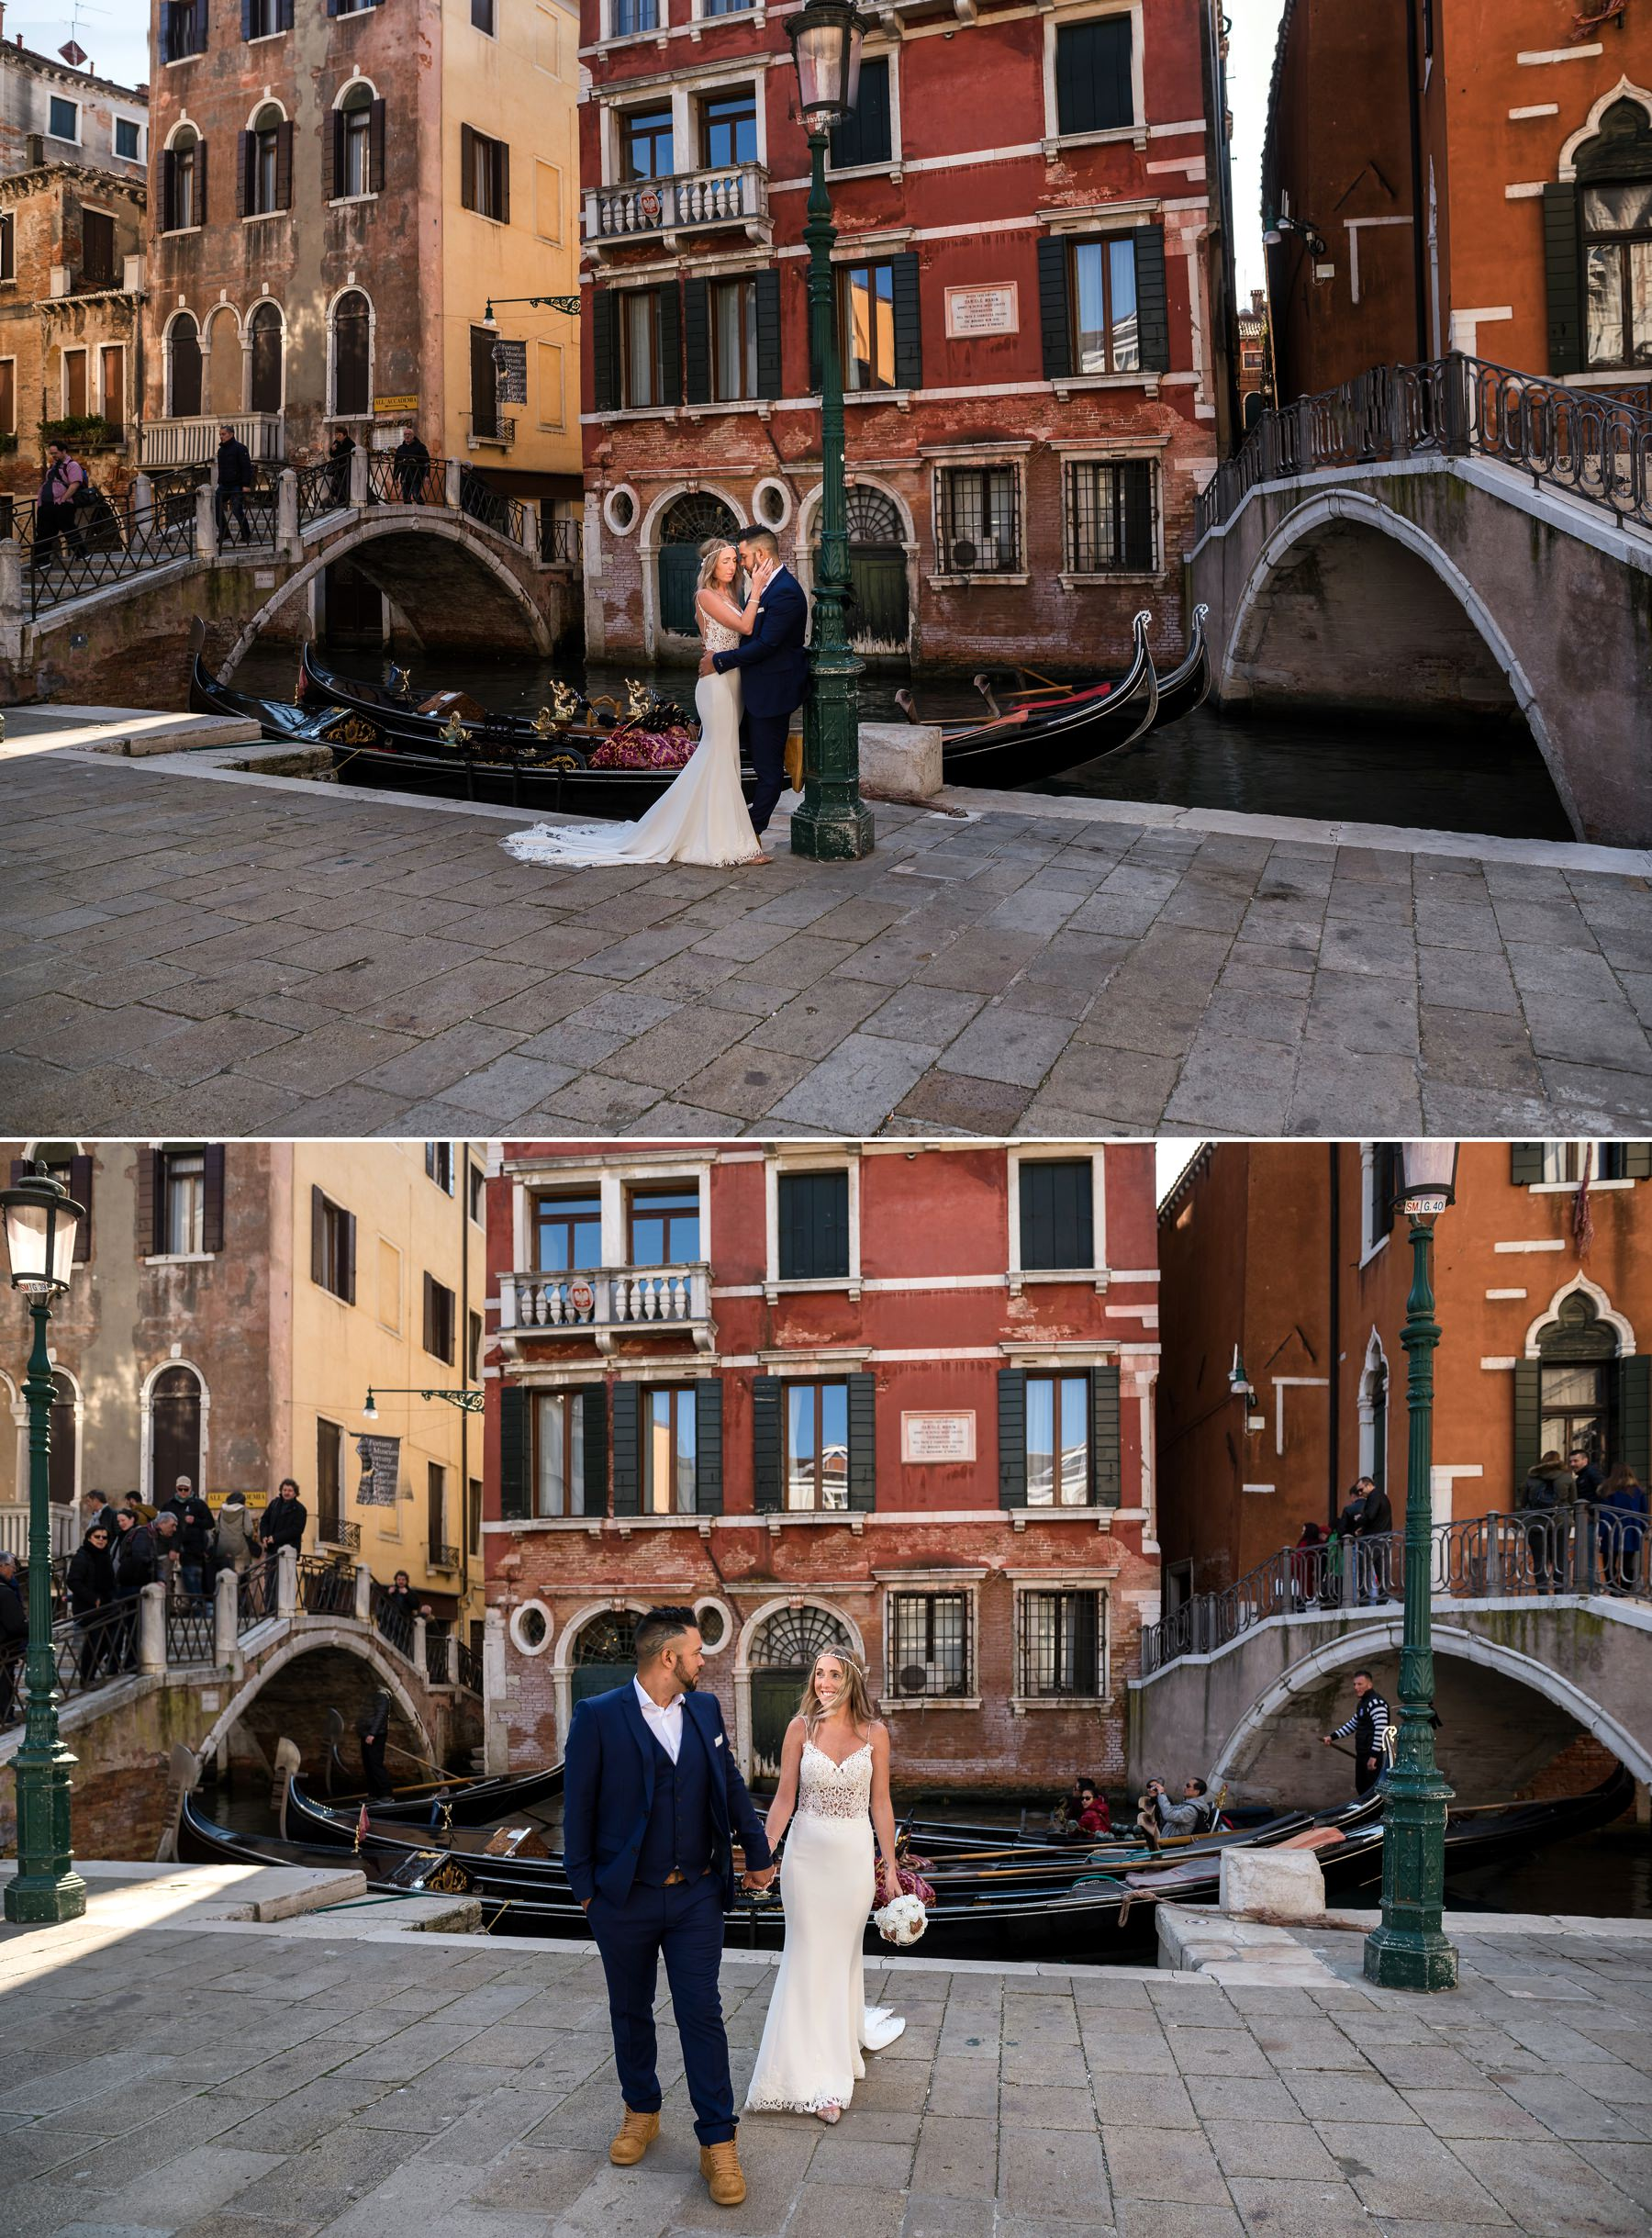 Palazzo Cavalli Venice groom is taking brides hand and walking in venice